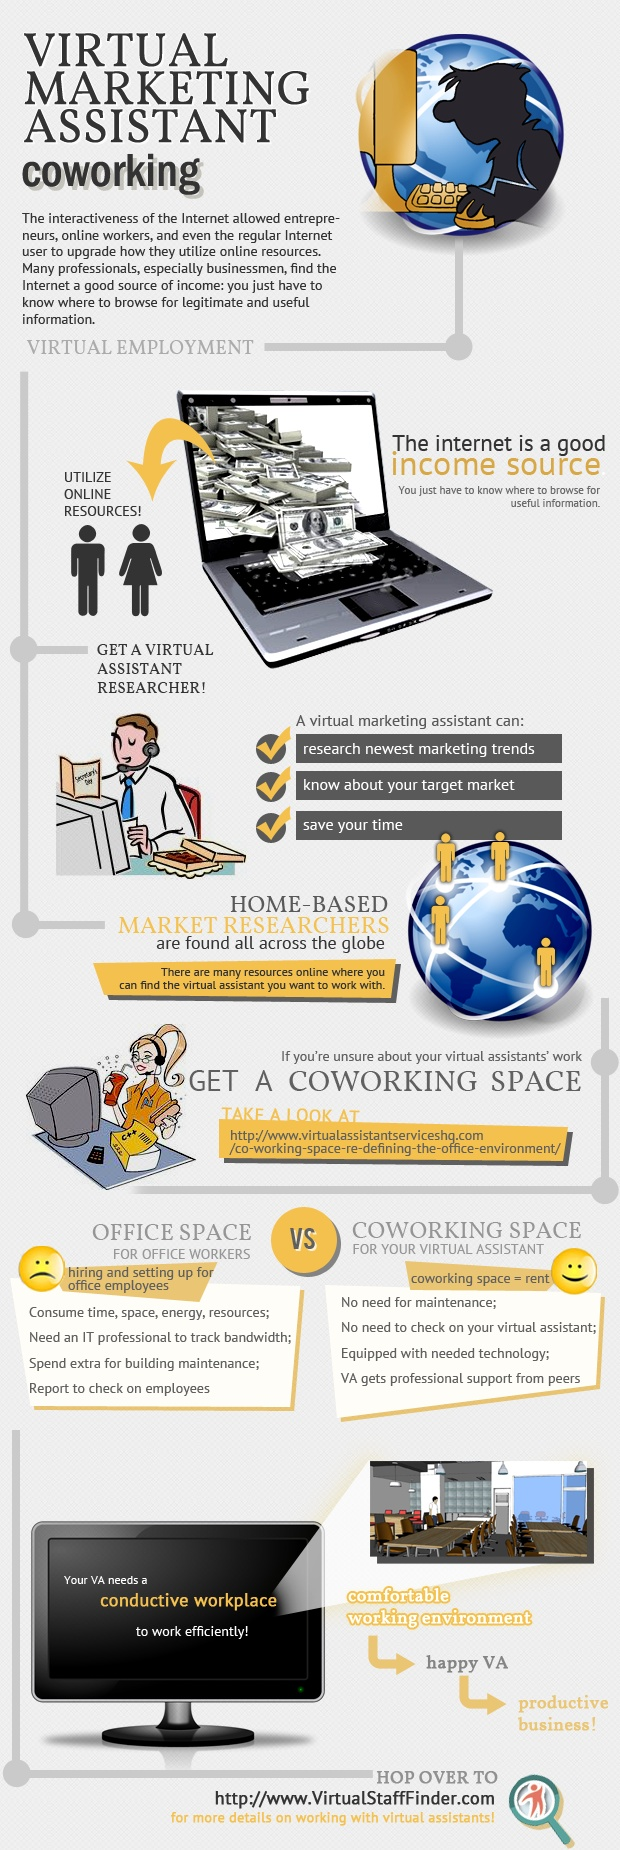 virtual assistants typically work from home this makes an offshore client skeptical about how efficiently